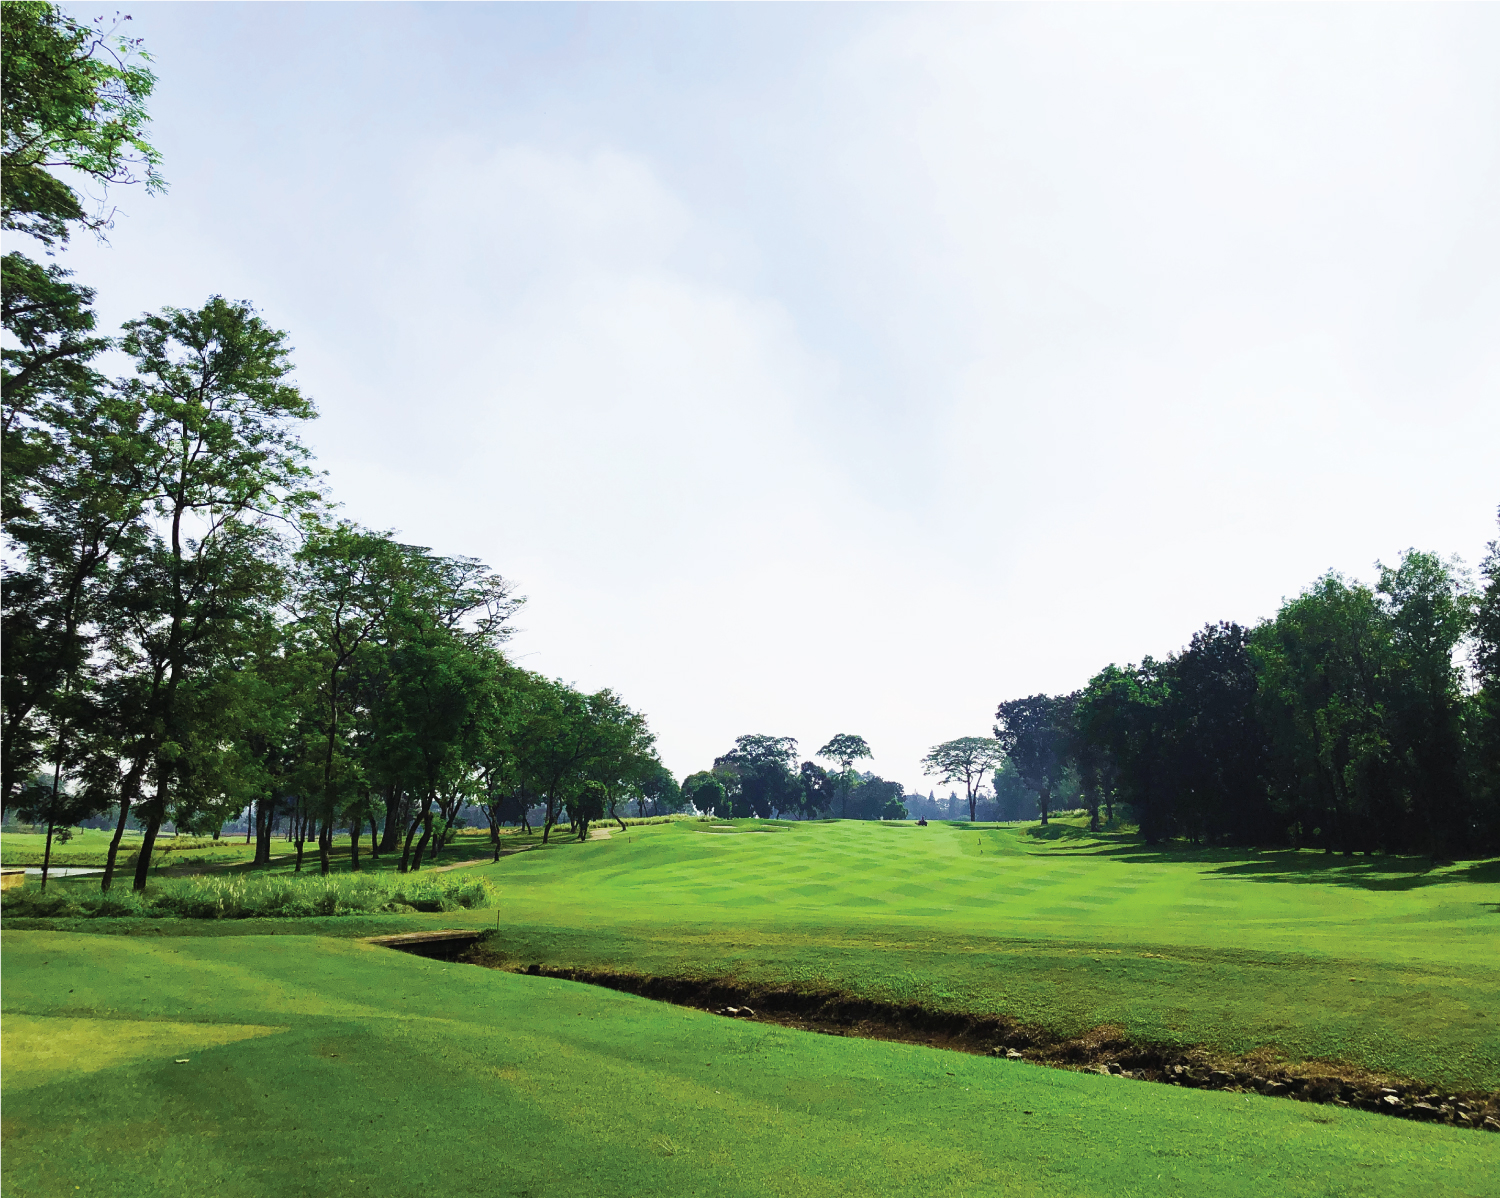 GOLF-COURSE-1-GREEN-COURSE